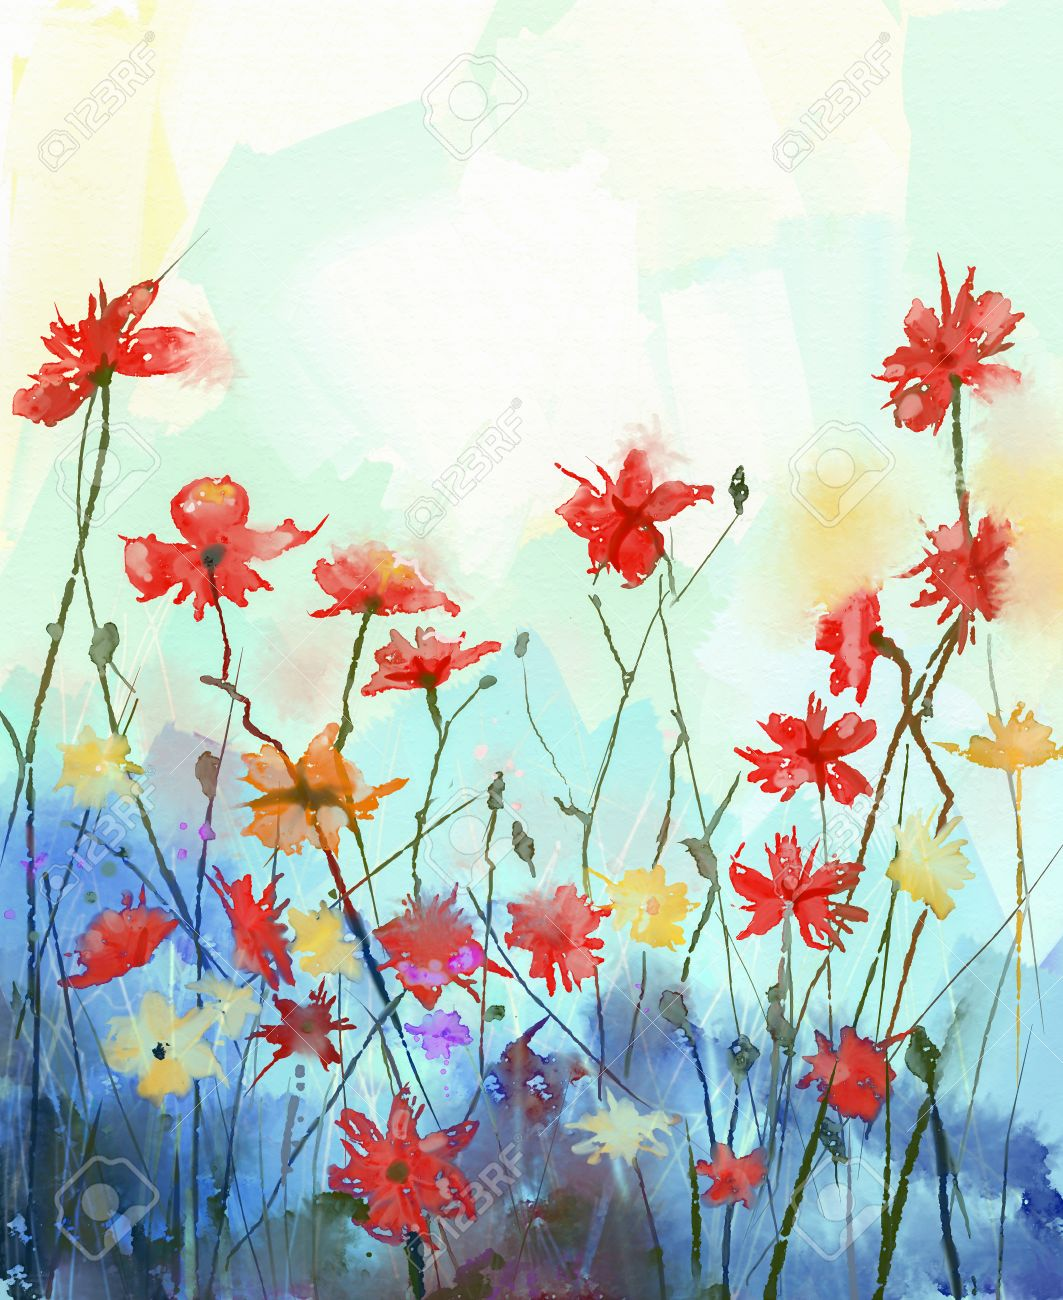 Color Painting watercolor flowers painting in soft color and blur style .vintage